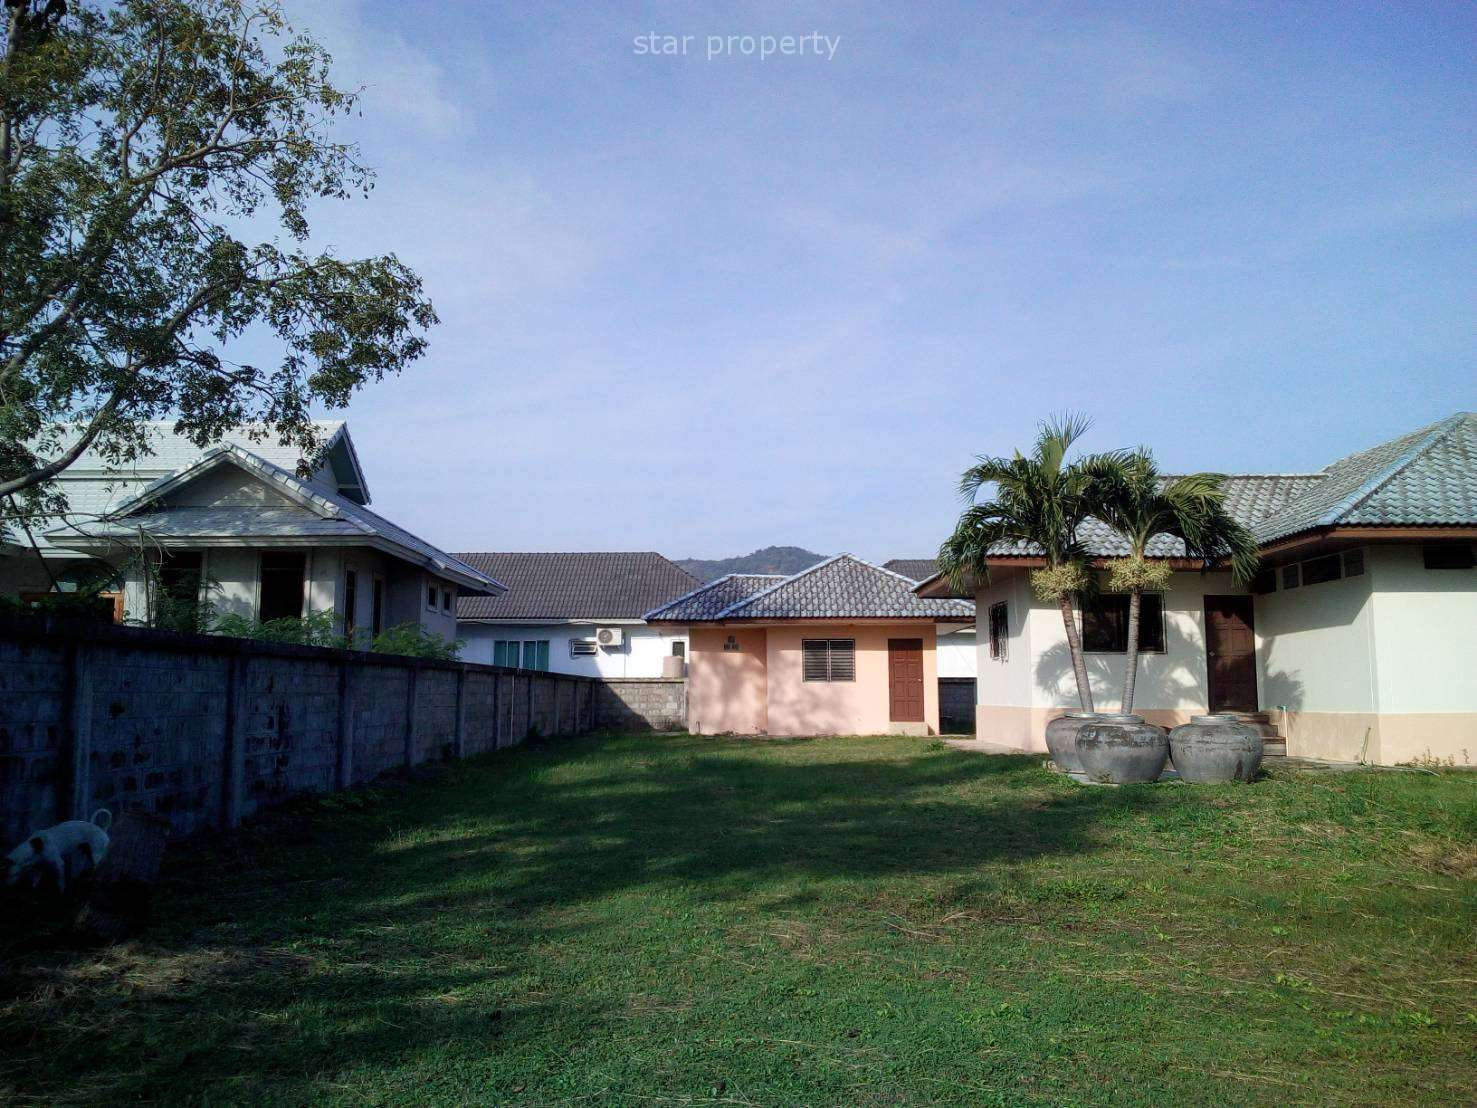 4 Bedroom Bungalow on Large Land for Sale in Hua Hin Soi 56 at Hua Hin District, Prachuap Khiri Khan, Thailand